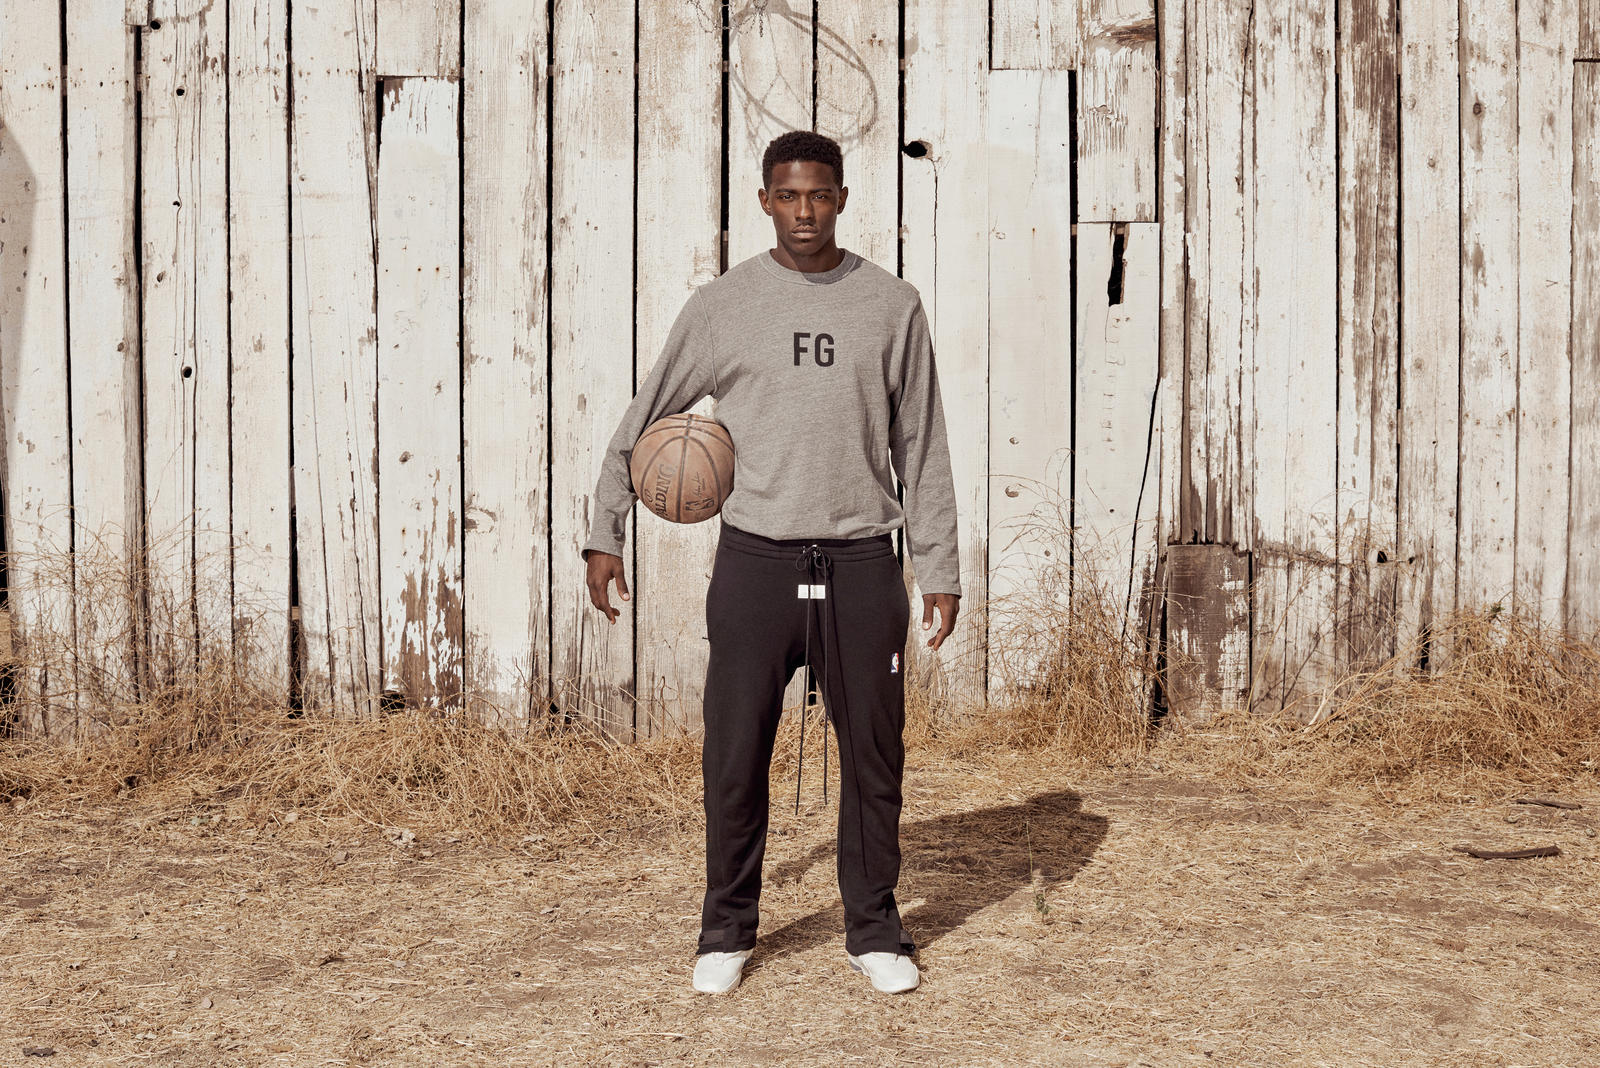 fear-of-god-nike-air-basketball-collection-2018-release-20181215